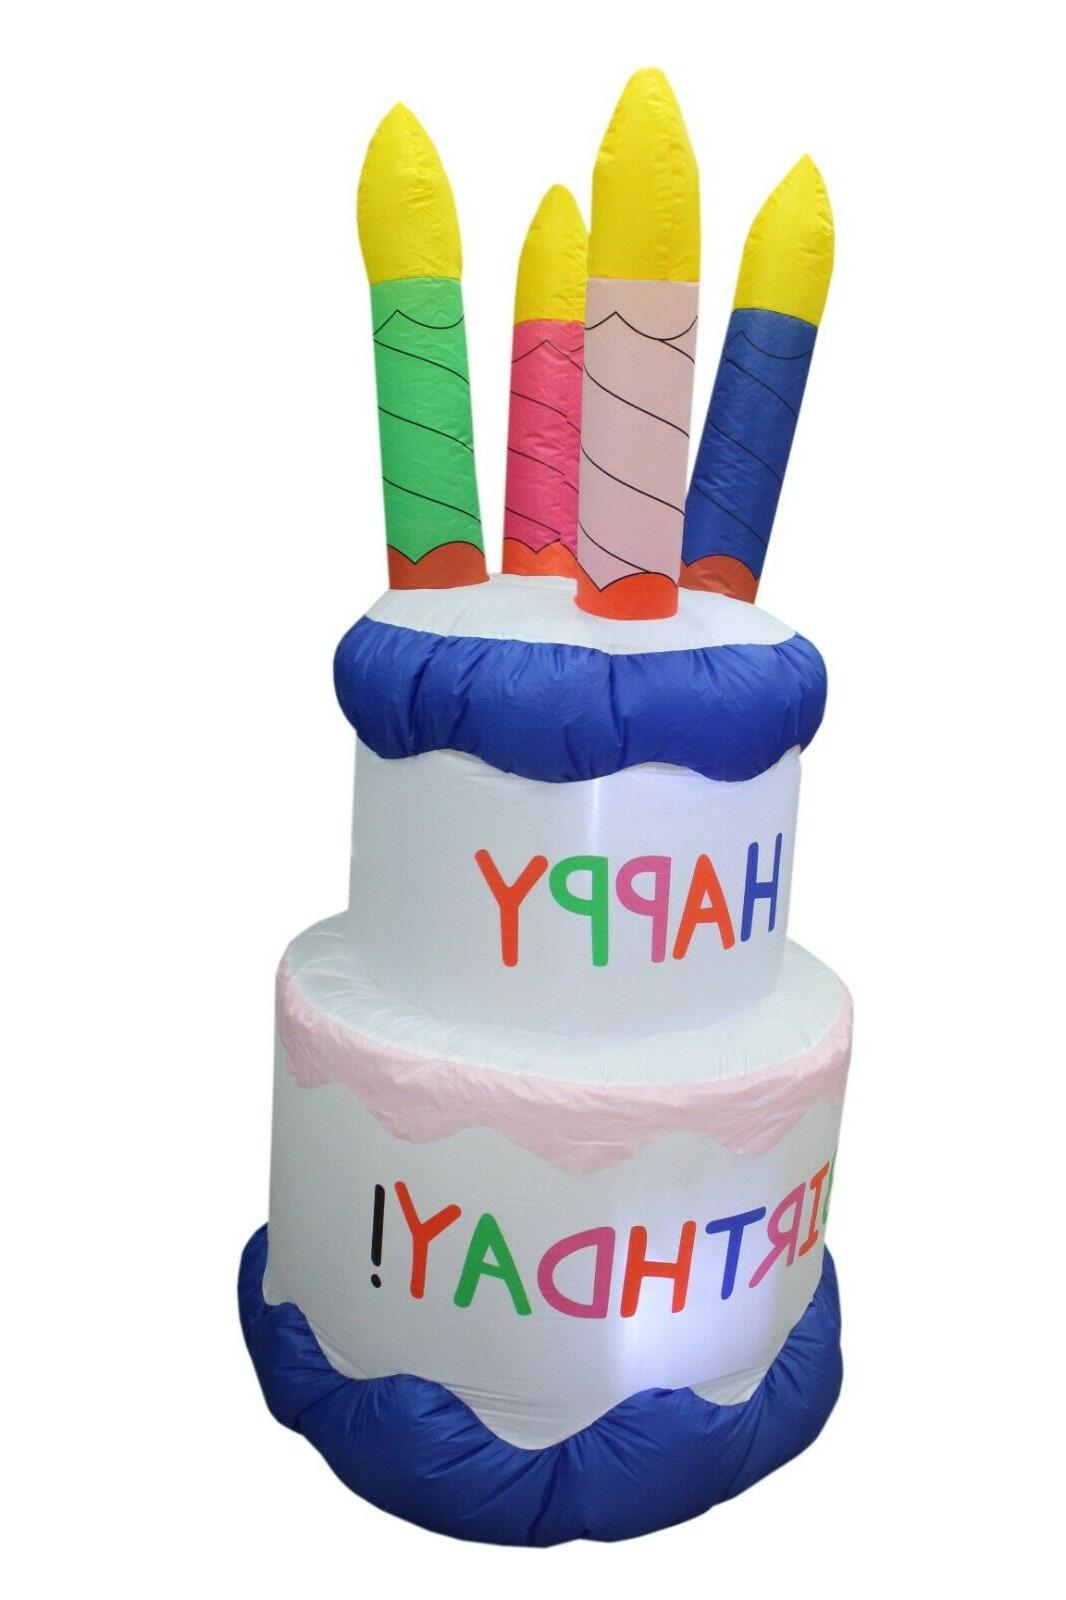 6 HAPPY BIRTHDAY CAKE CANDLES PARTY OUTDOOR LAWN